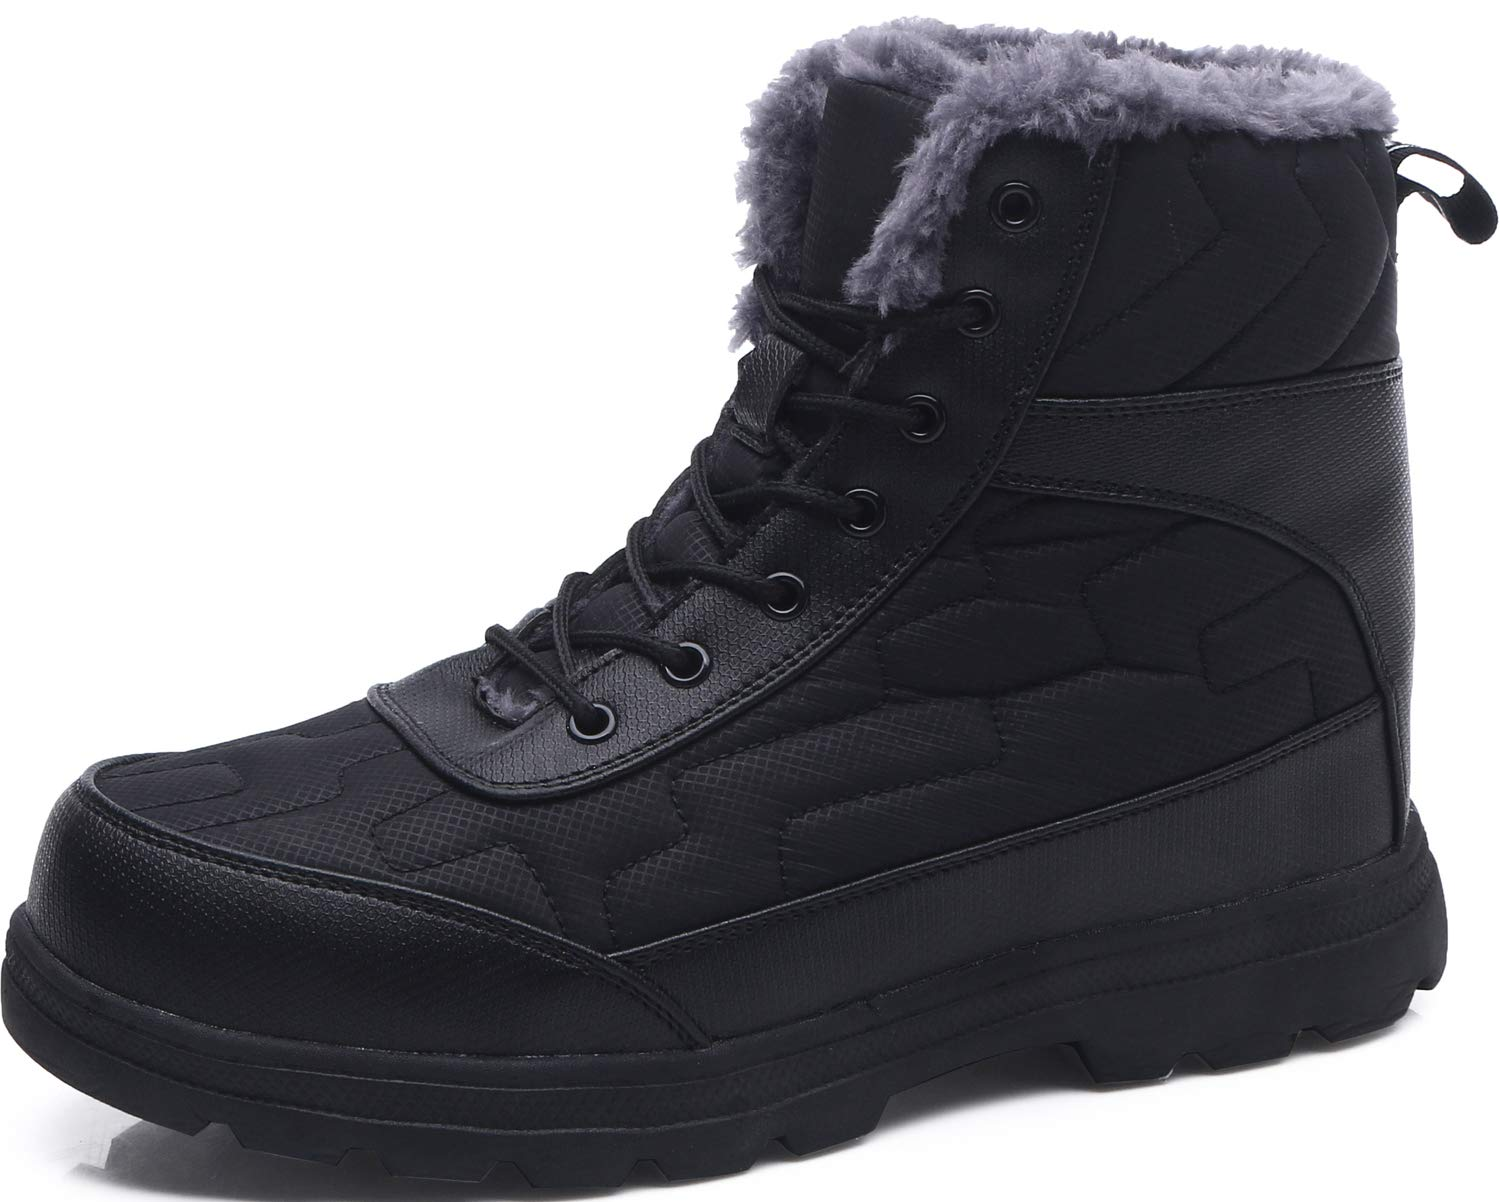 Scurtain Unisex Snow Boots Waterproof Anti-Slip Winter Fur Lining Booties for Womens and Mens